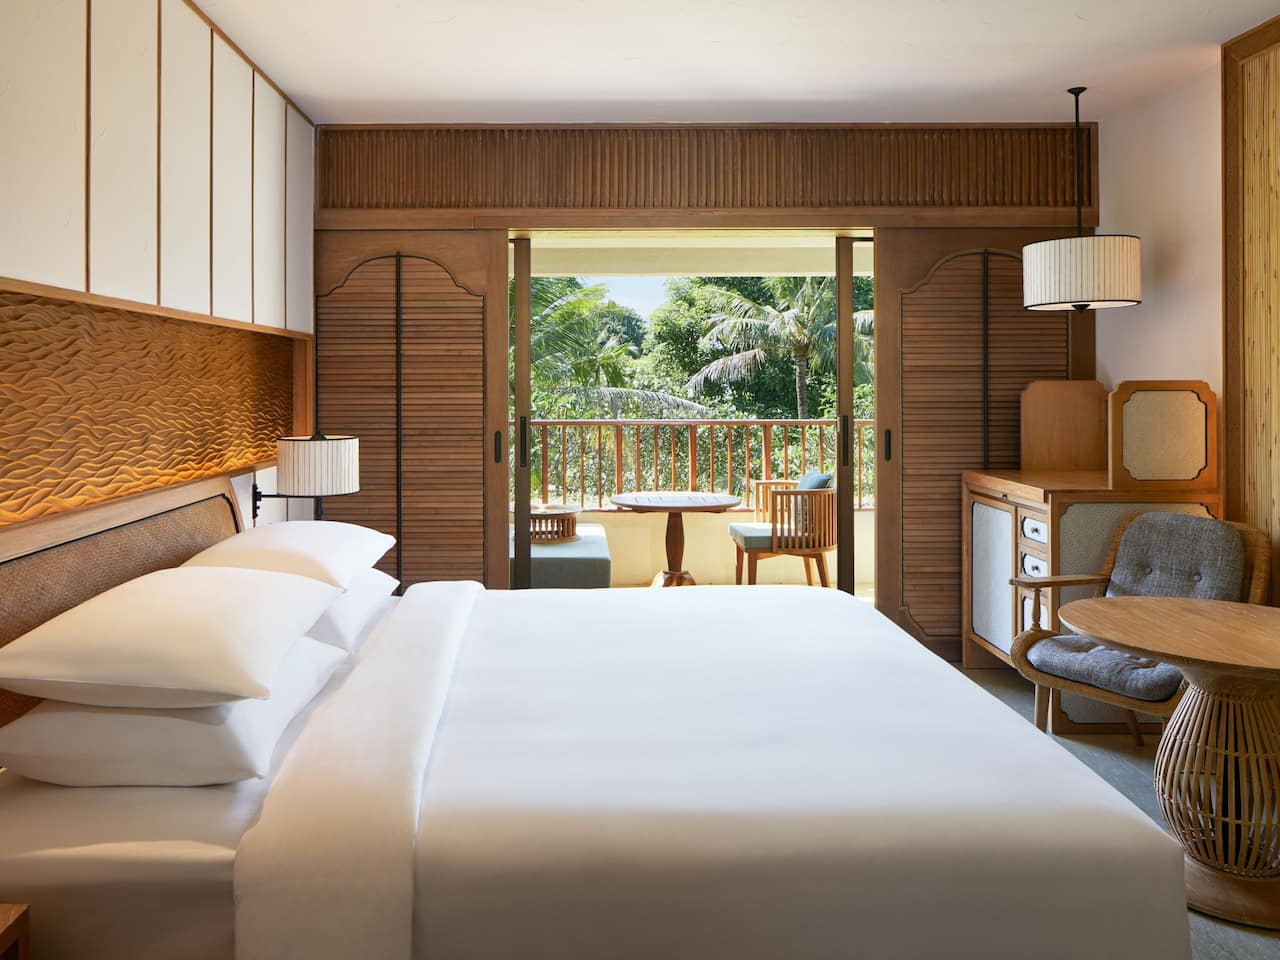 King Rooms Hyatt Regency Bali, Sanur Indonesia